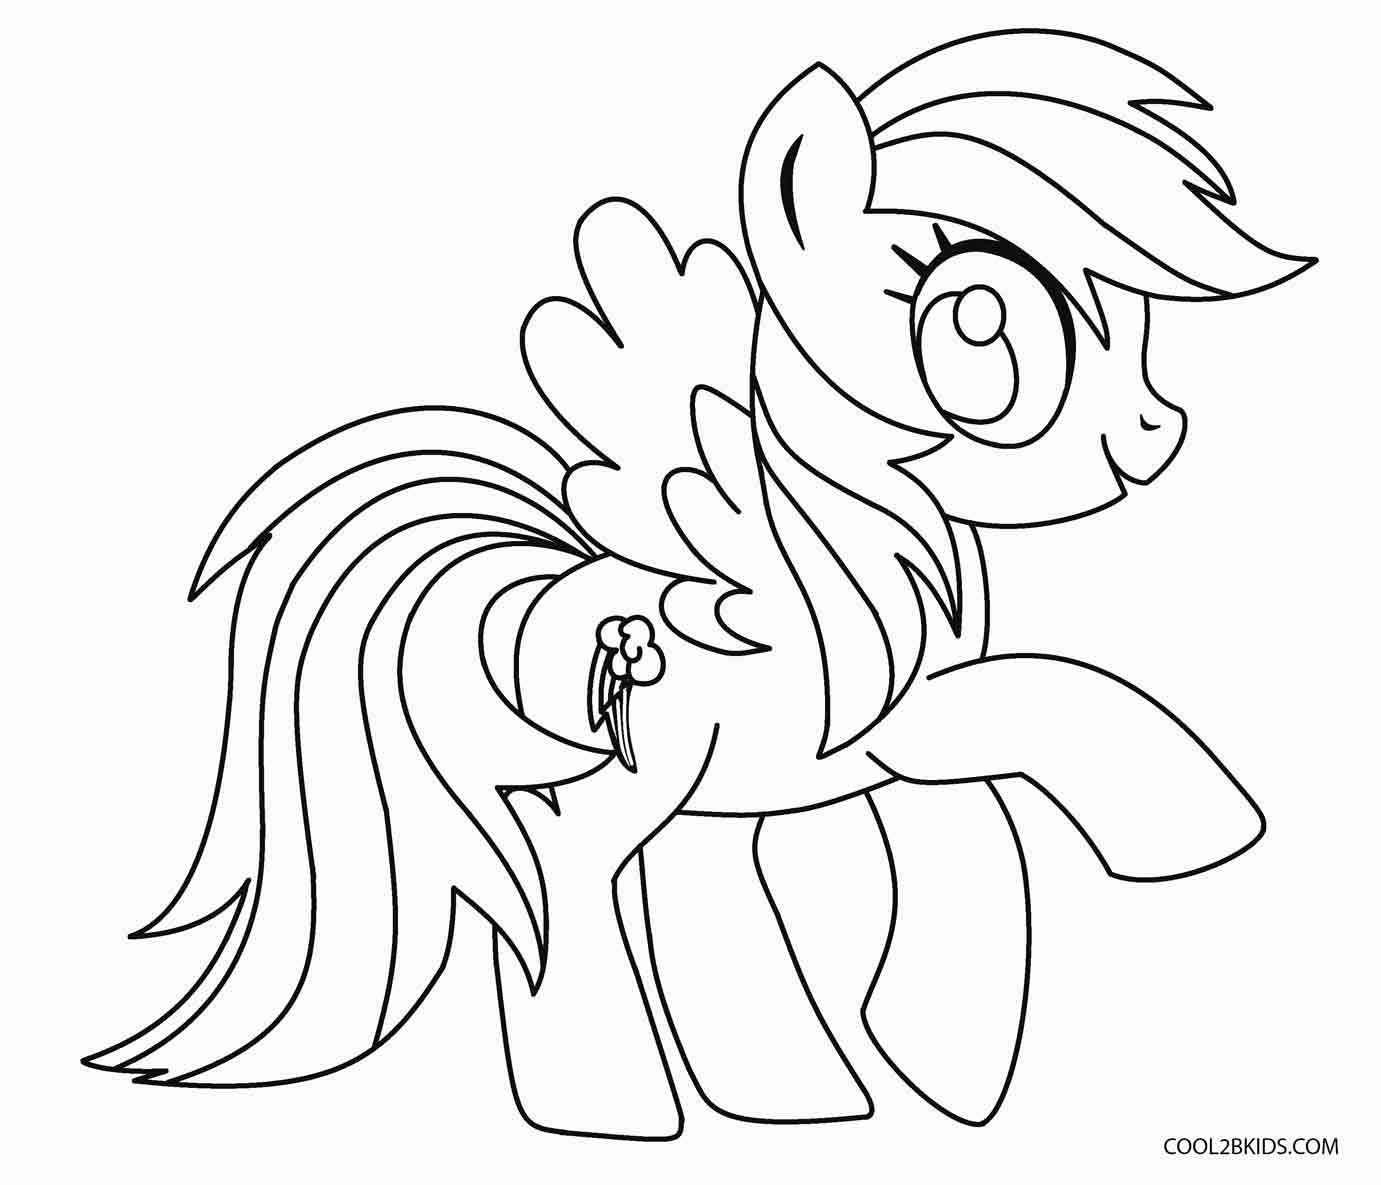 my little pony coloring template free printable my little pony coloring pages for kids pony template coloring my little